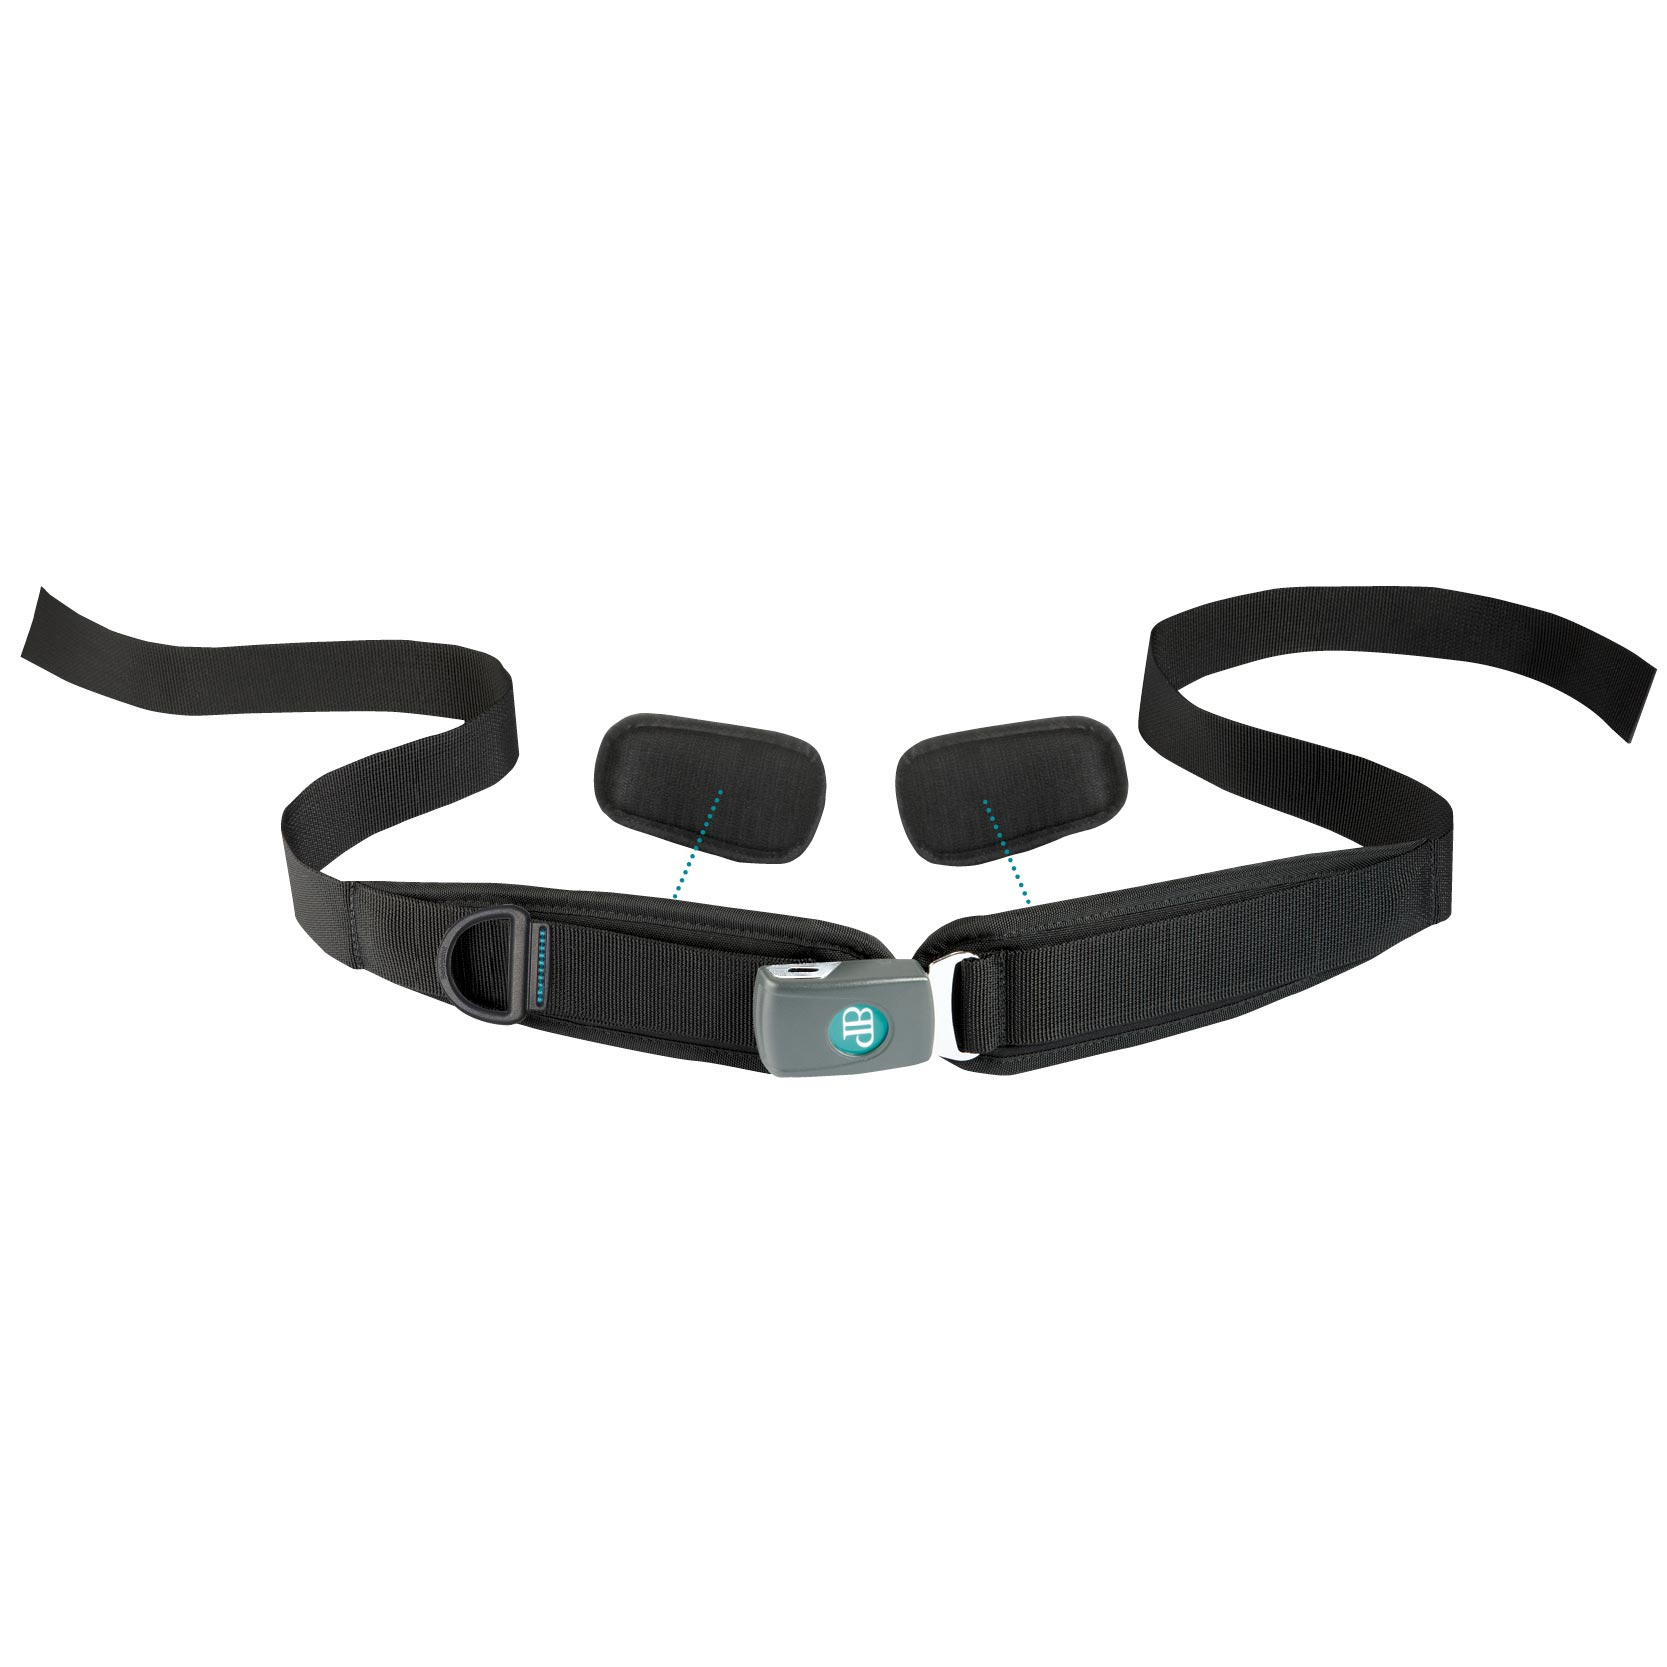 Bodypoint sub-ASIS compatible center-pull two point padded hip belt with push button buckle